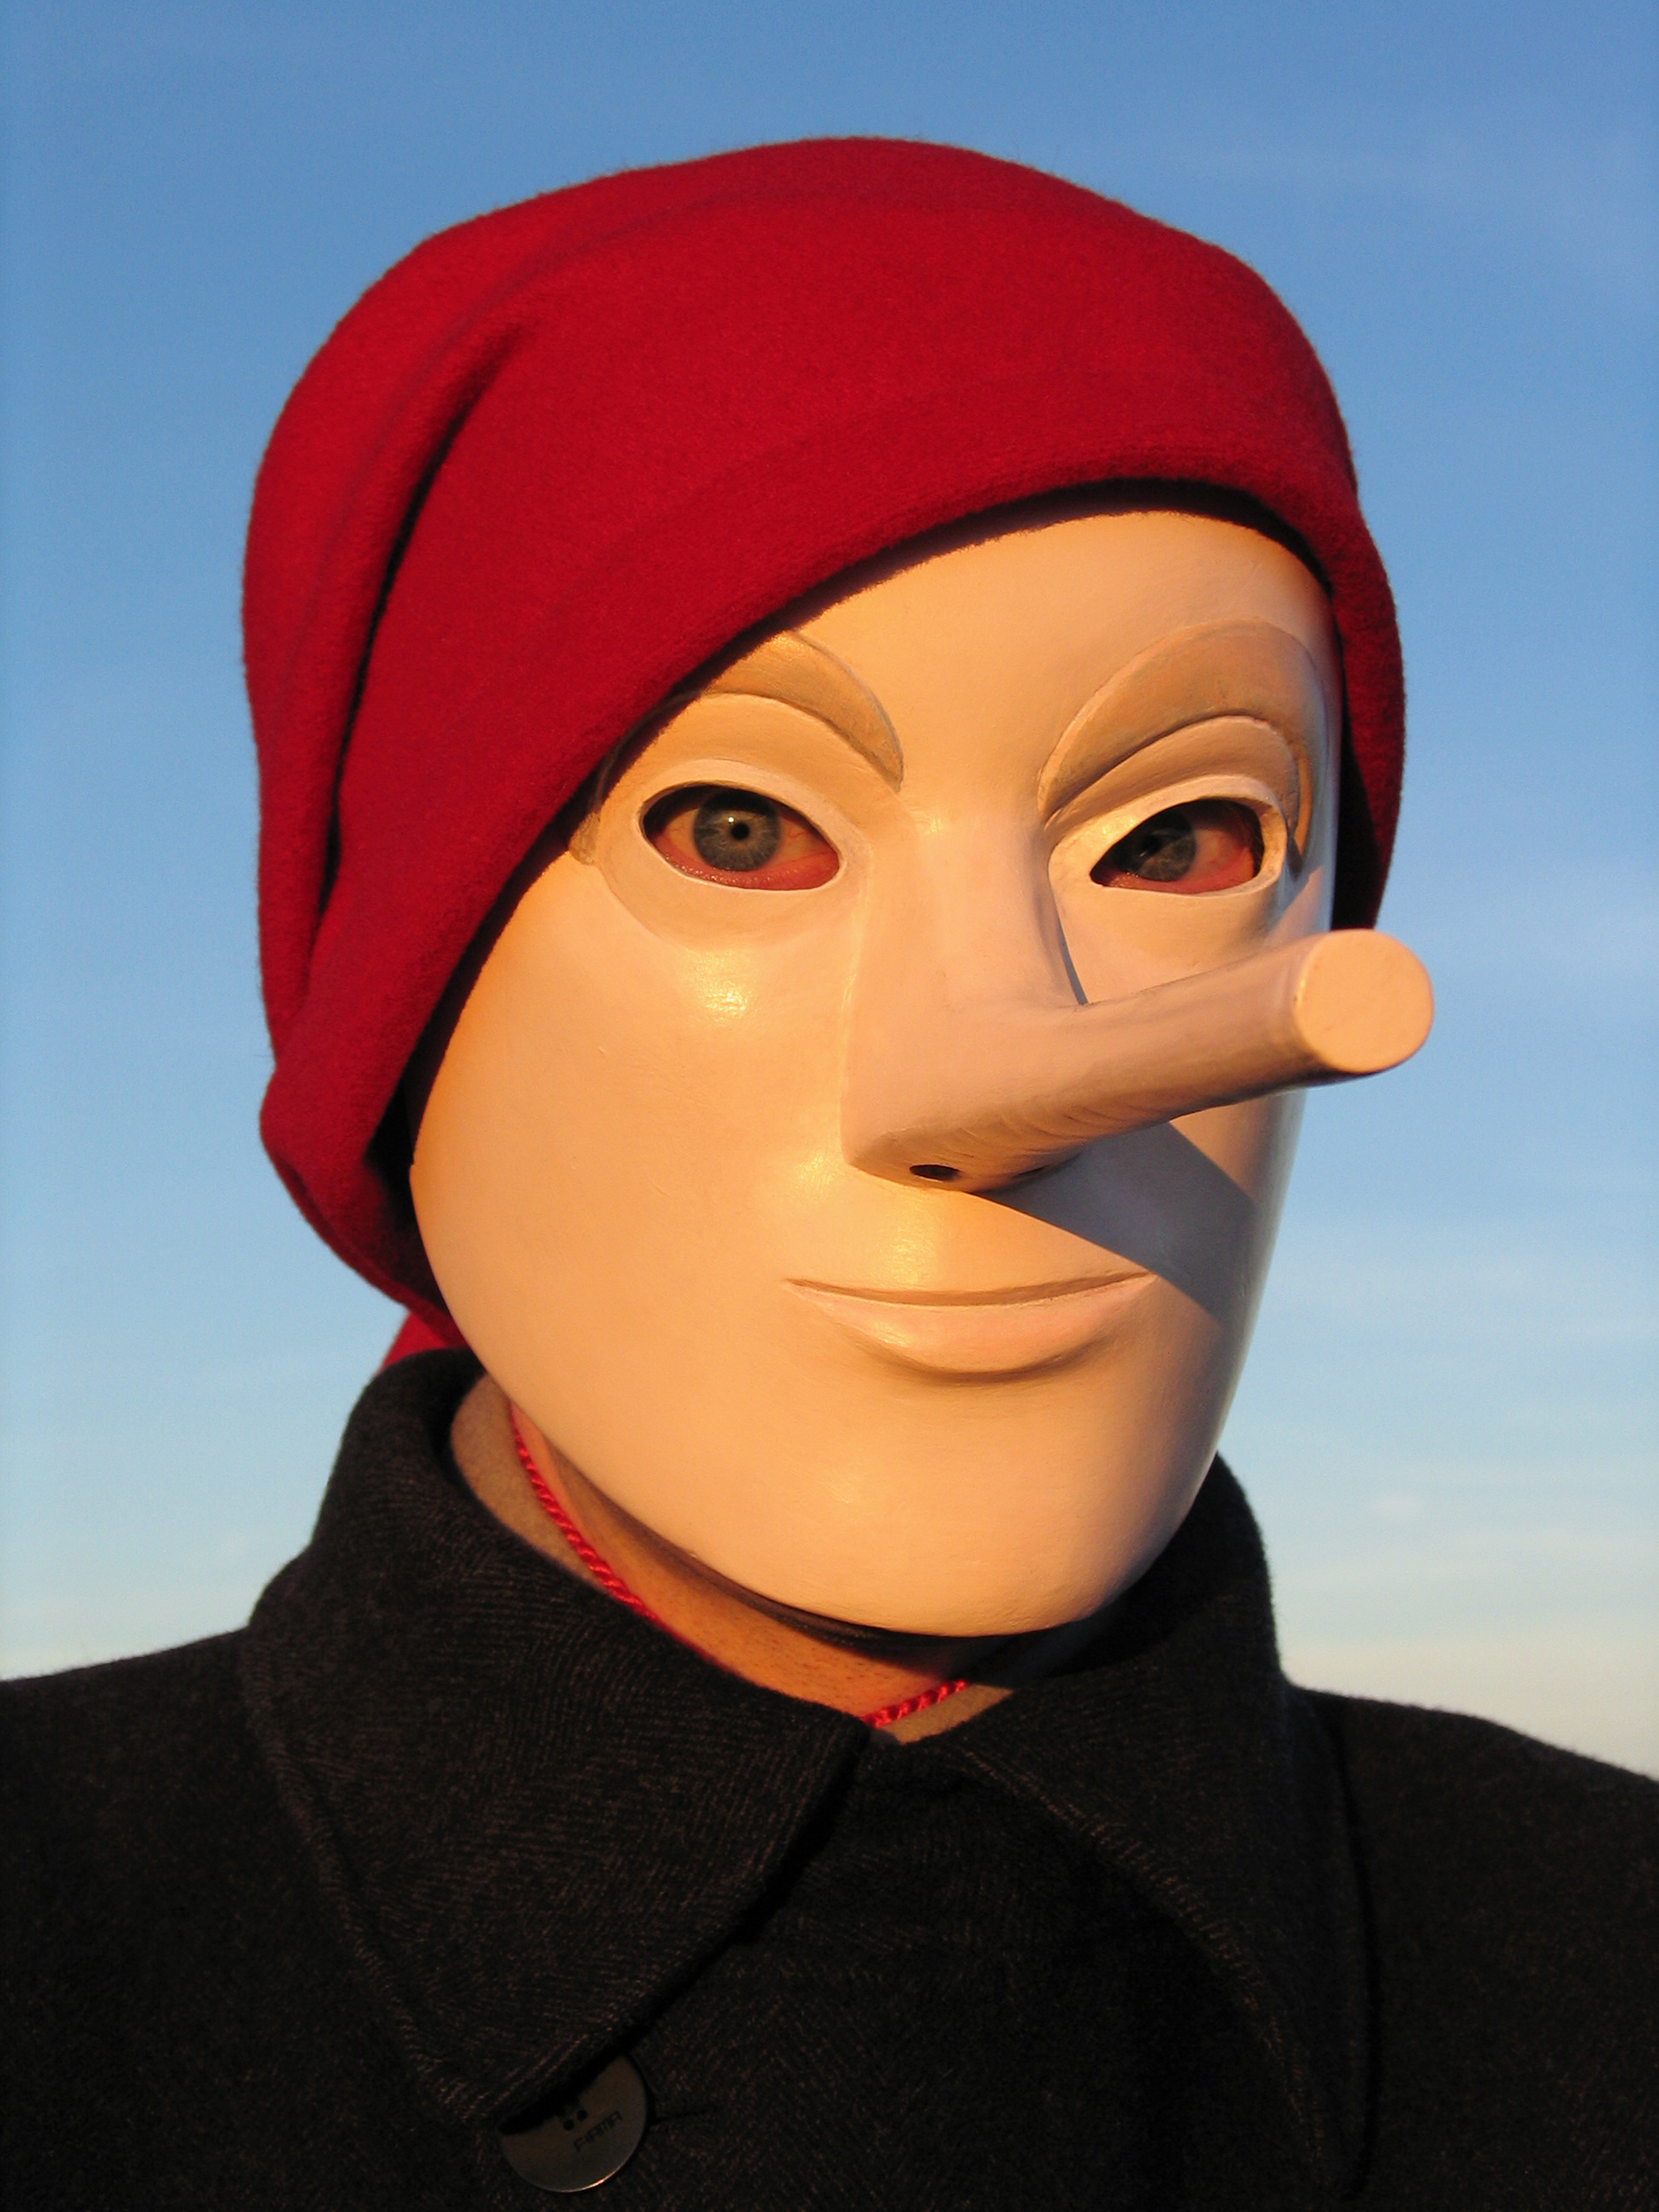 Pinocchio Self-portrait with Red Scarf, photograph by Wouter van Riessen